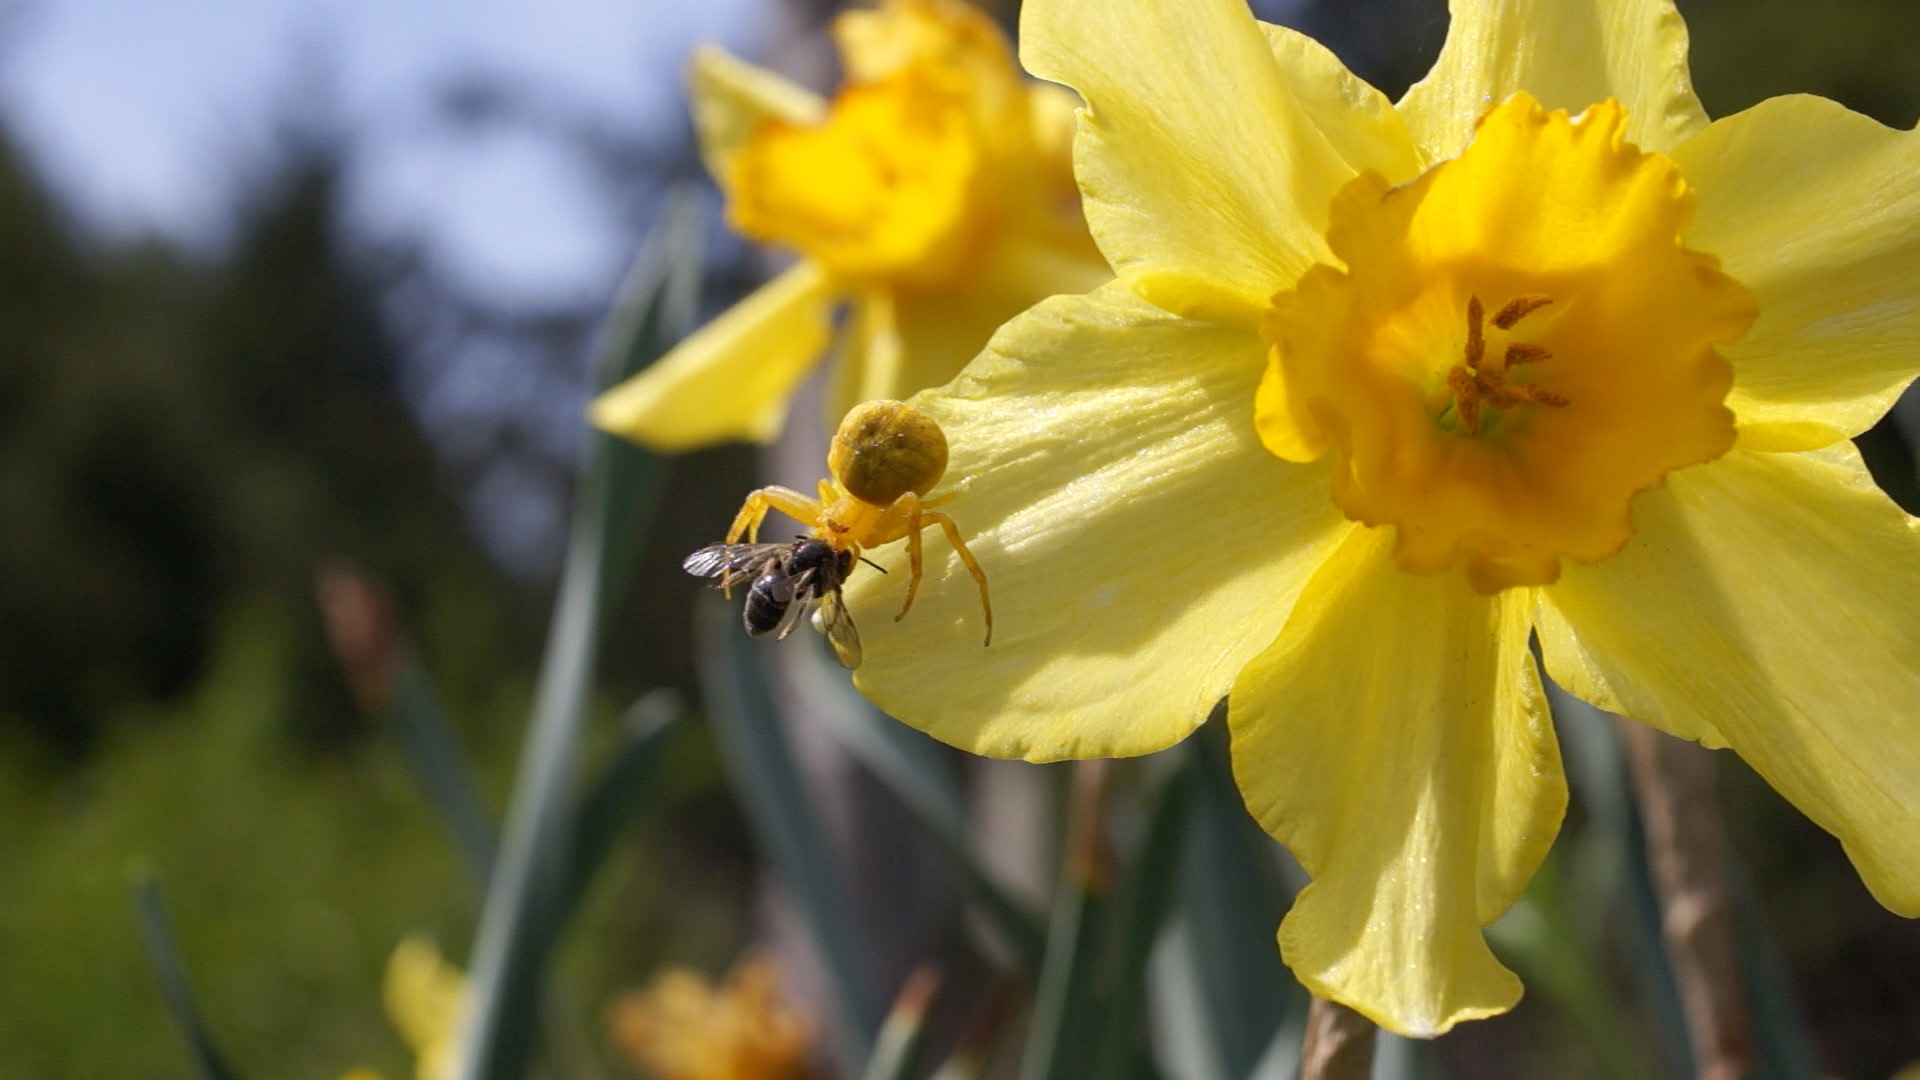 Daffodil spider. Strong enough to catch honey bees. They are yellow on yellow flowers and white on white flowers. I guess they change color. This one has a small native bee.